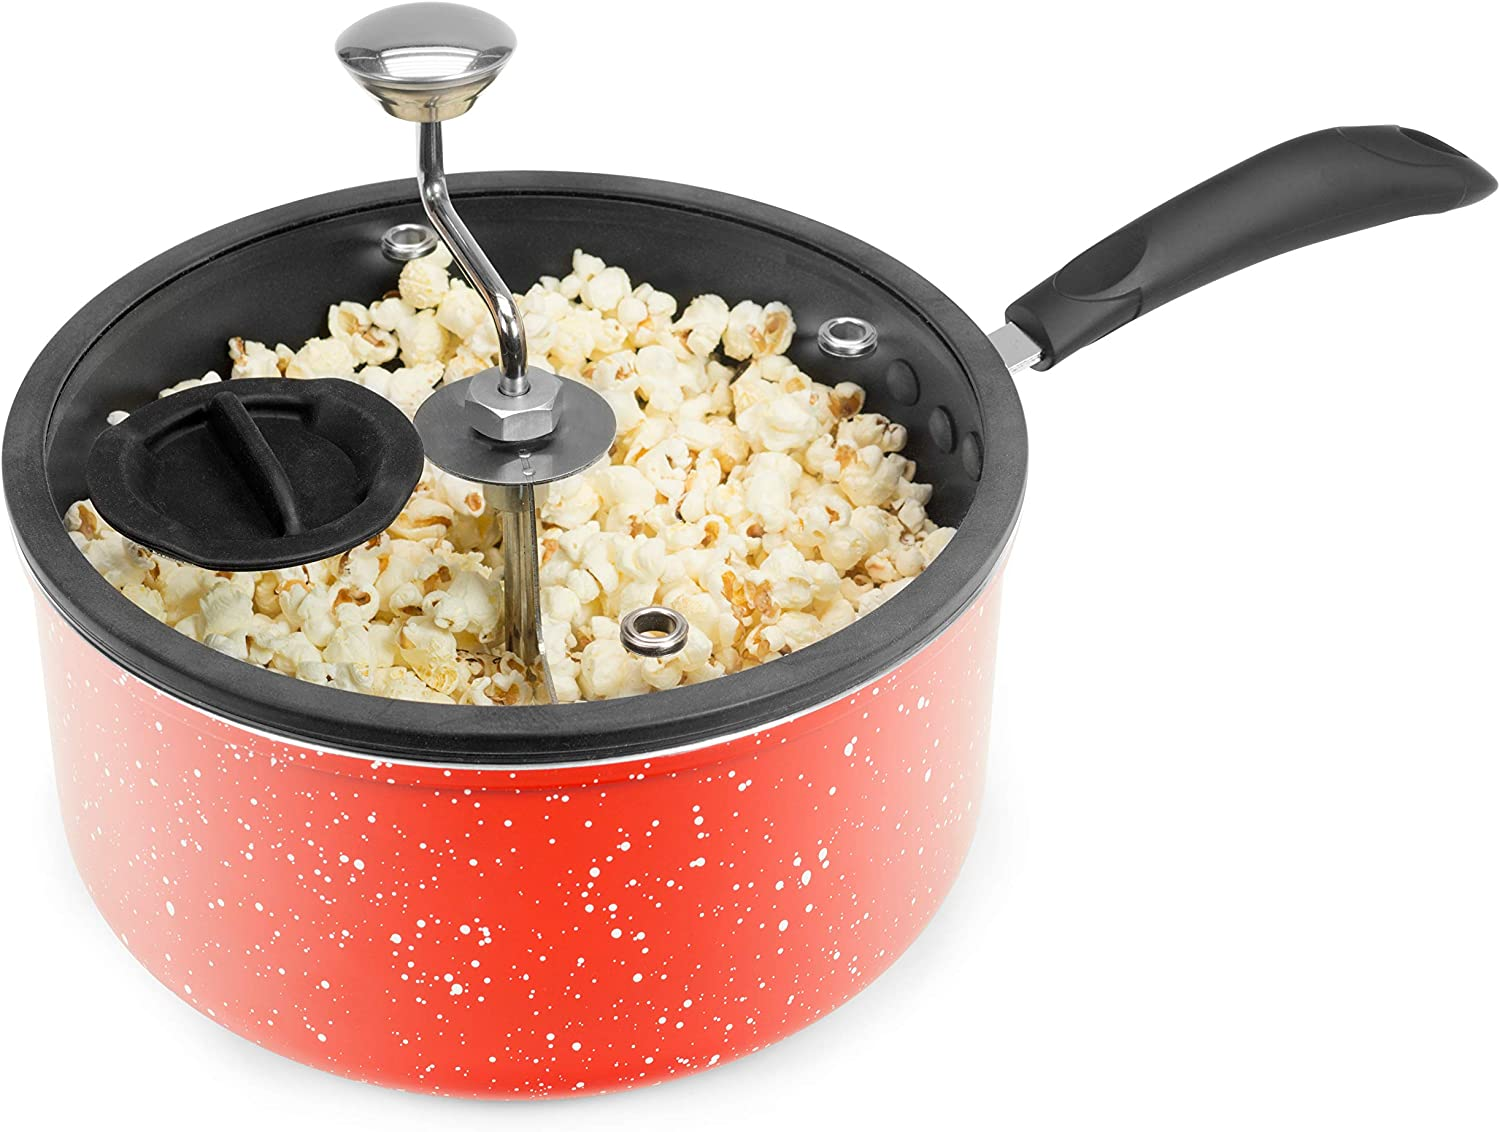 Zippy Pop Red Marble Stovetop Popcorn Popper, 5-1/2-Quart, NEW 2020 Model, Glass Lid with Silicone Rim, Dishwasher Safe, Easily Make Classic or Flavored Popcorn, Recipes Included